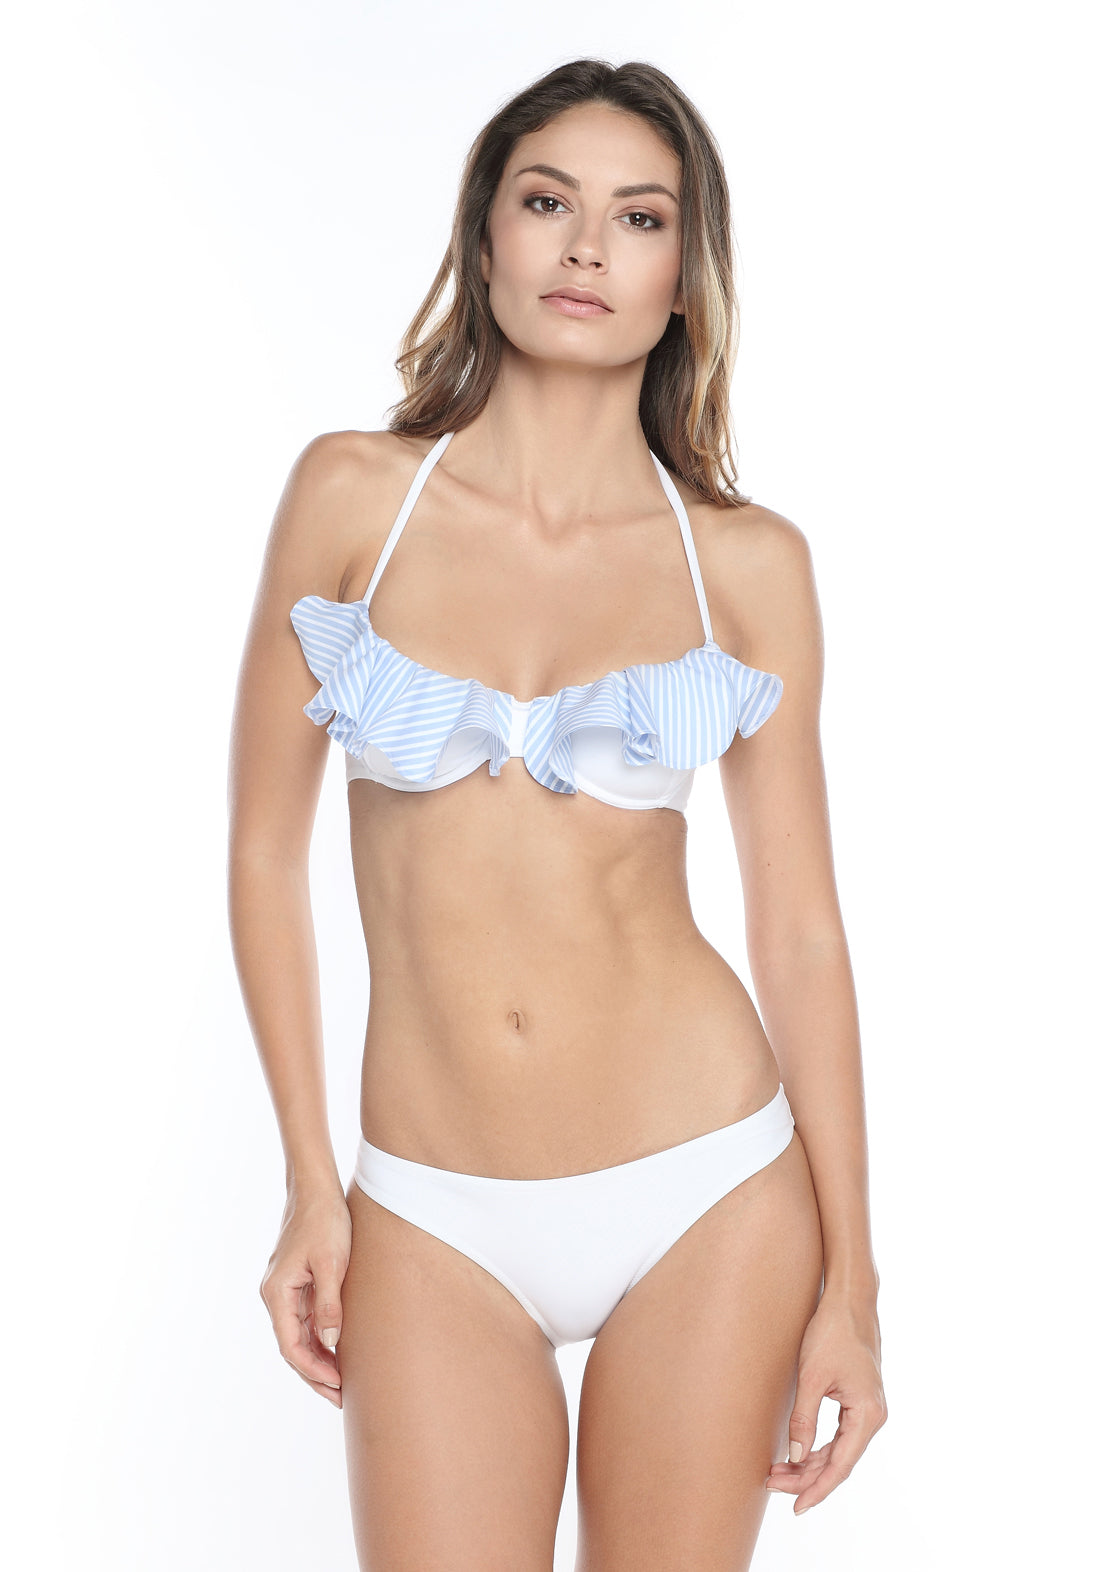 Fleur à la Plage Underwired Bikini Top in Vanilla/Aqua